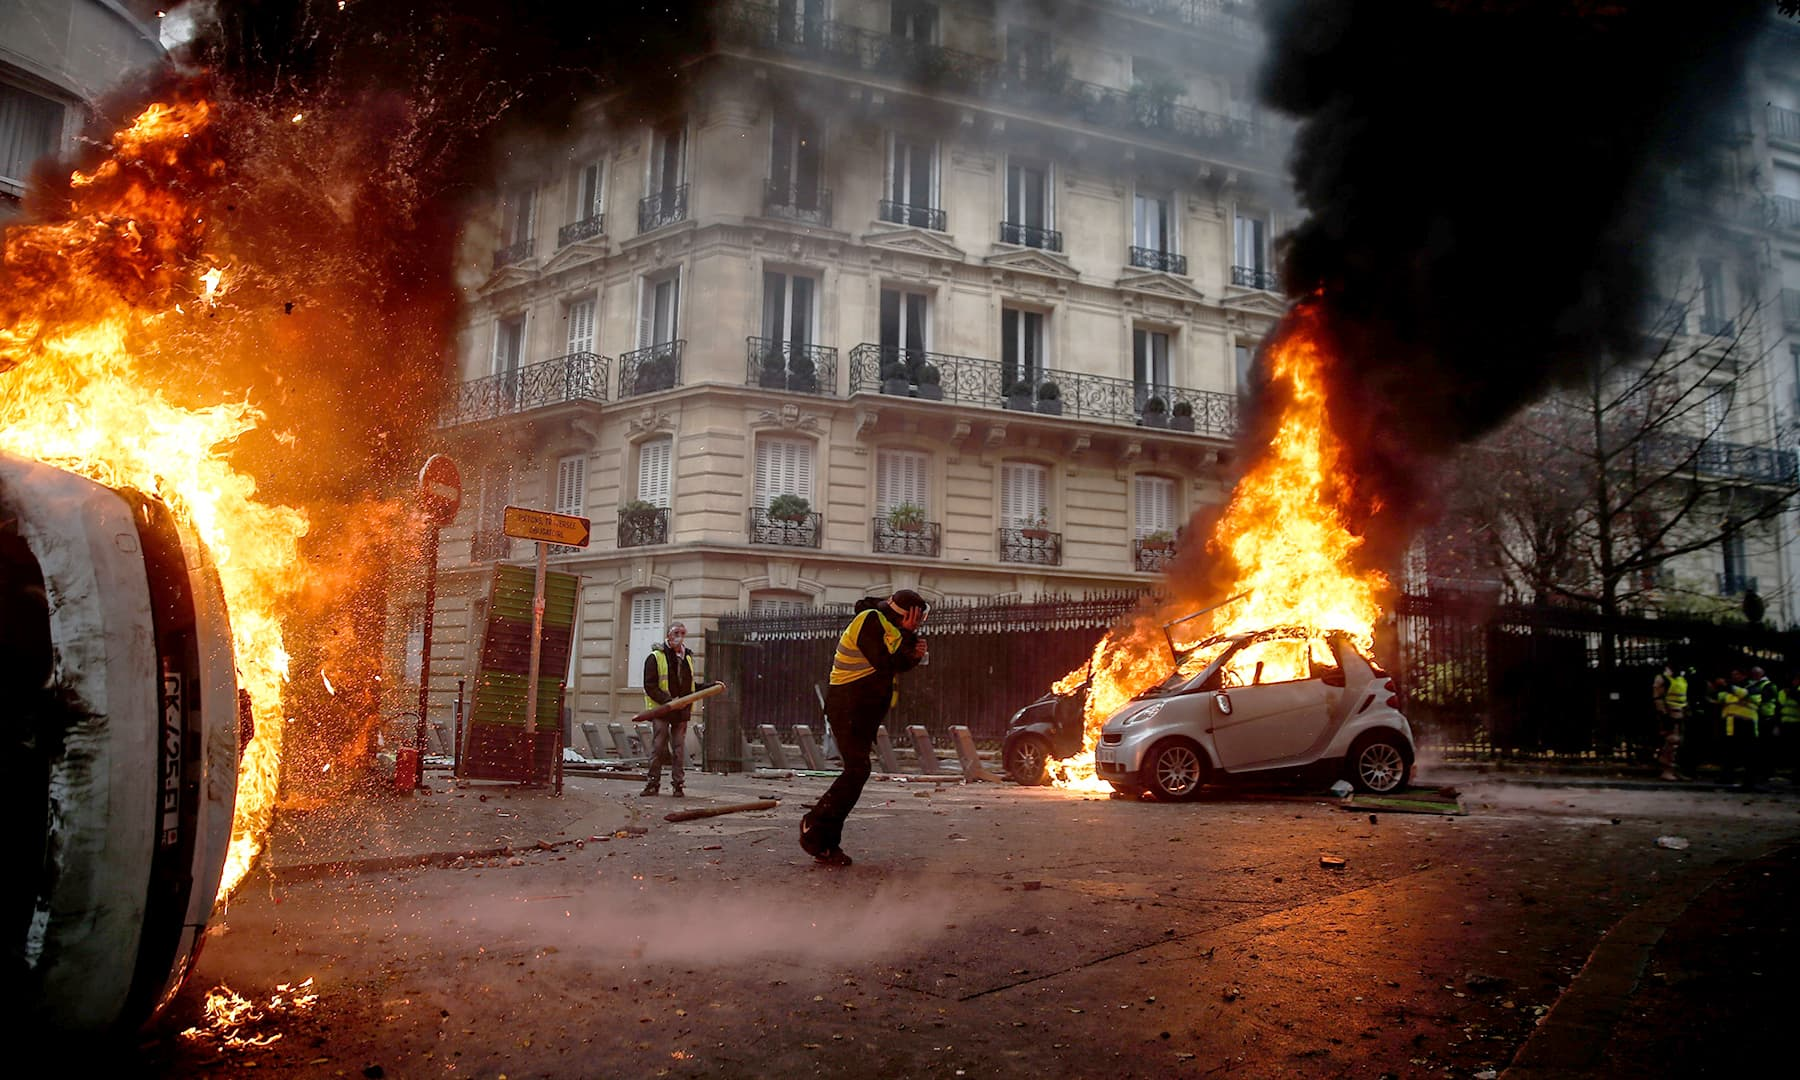 Dozens of cars were set ablaze during clashes with riot police. —AFP